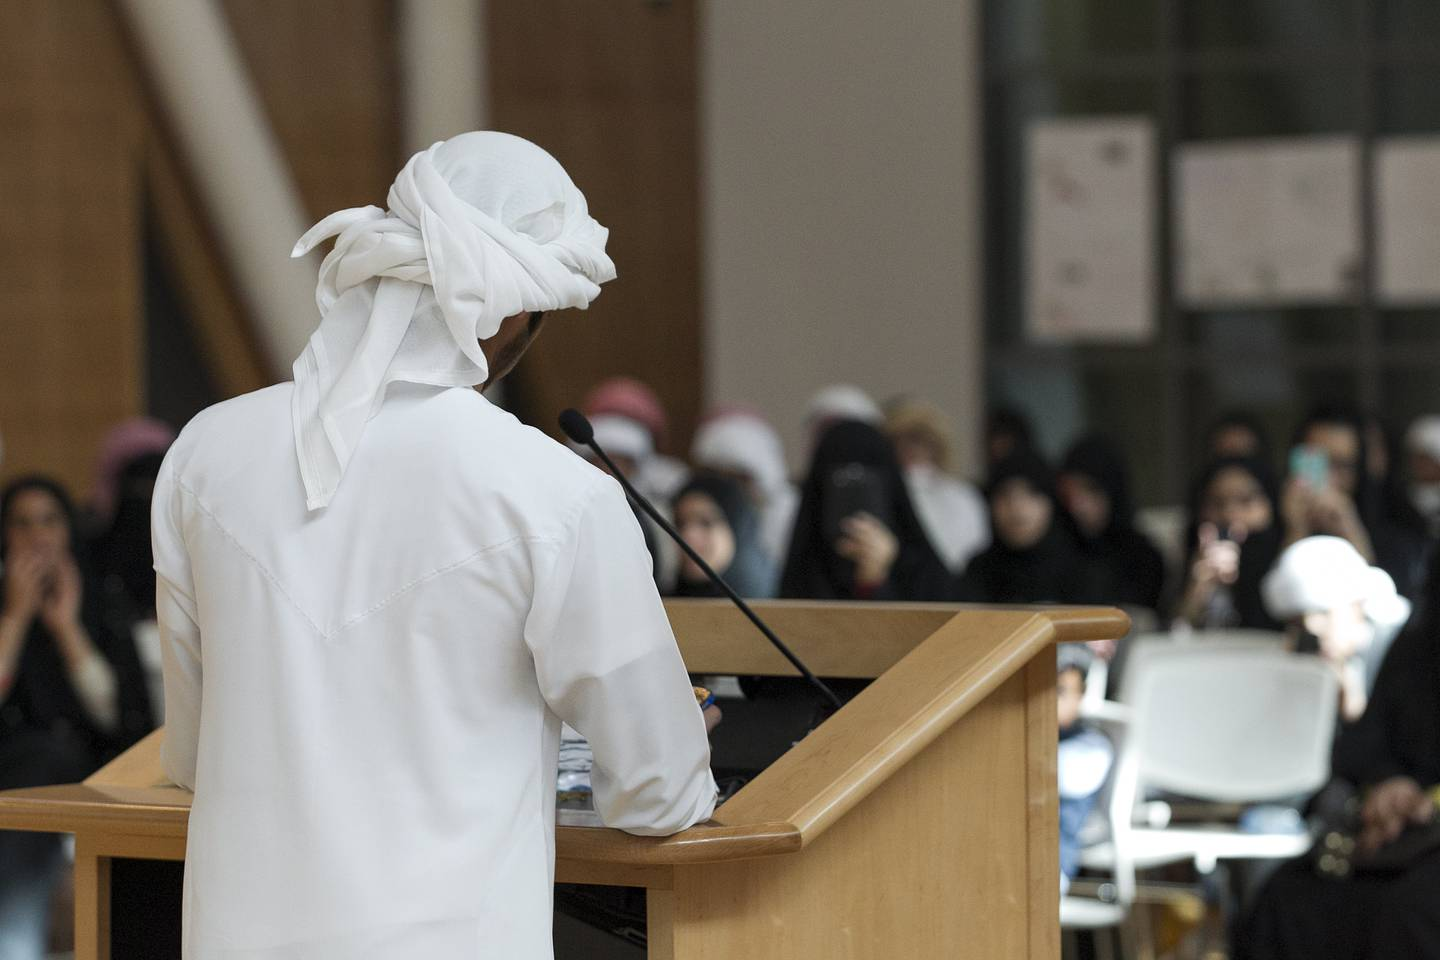 Abu Dhabi, United Arab Emirates. December 26, 2013///  Students saying their final speeches. Tech Quest Expo - students explaining the 6 modules to anyone who visits what they learned and did during that module. Last day of Tech Quest which is a youth engagement initiative designed to recruit, inspire and develop the UAEÕs best national talent, creating the science and technology pioneers of tomorrow. Masdar Institute, Abu Dhabi, United Arab Emirates. Mona Al-Marzooqi/ The National   Reporter: Ayesha Al Khoori Section: National   *** Local Caption ***  131226-MM-Techquest-007.JPG